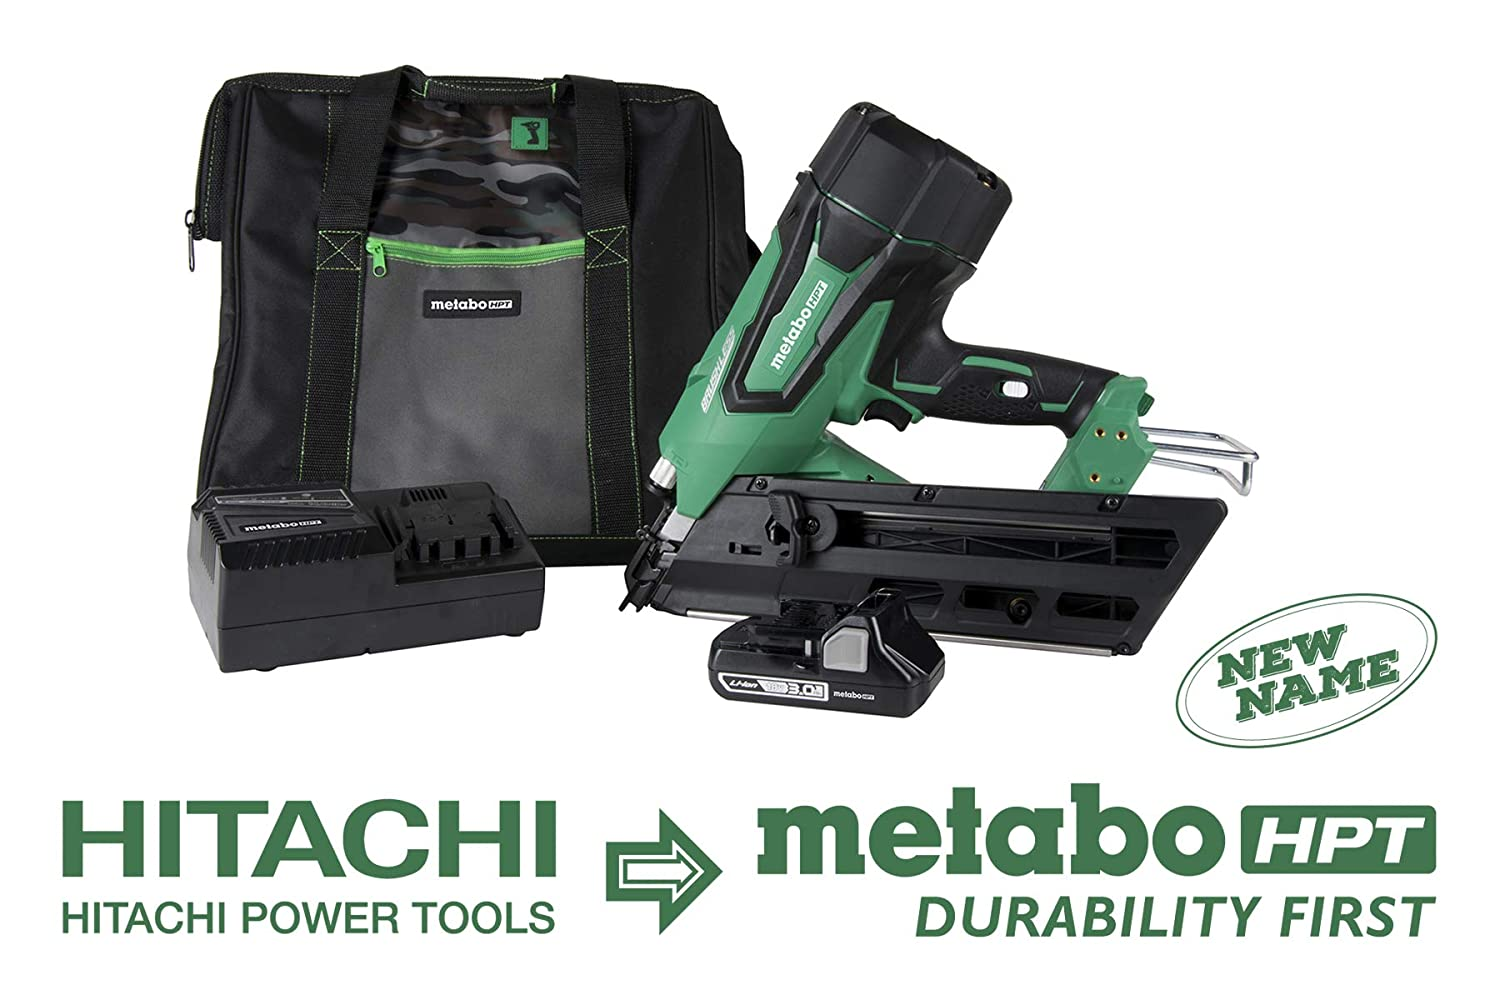 Metabo HPT NR1890DC 18V Cordless Framing Nailer, Brushless Motor, 2 up to 3-1 2 Clipped Offset Round Paper Strip Nails, 30 Degree Magazine, 3.0 Ah Lithium Ion Battery, Lifetime Tool Warranty